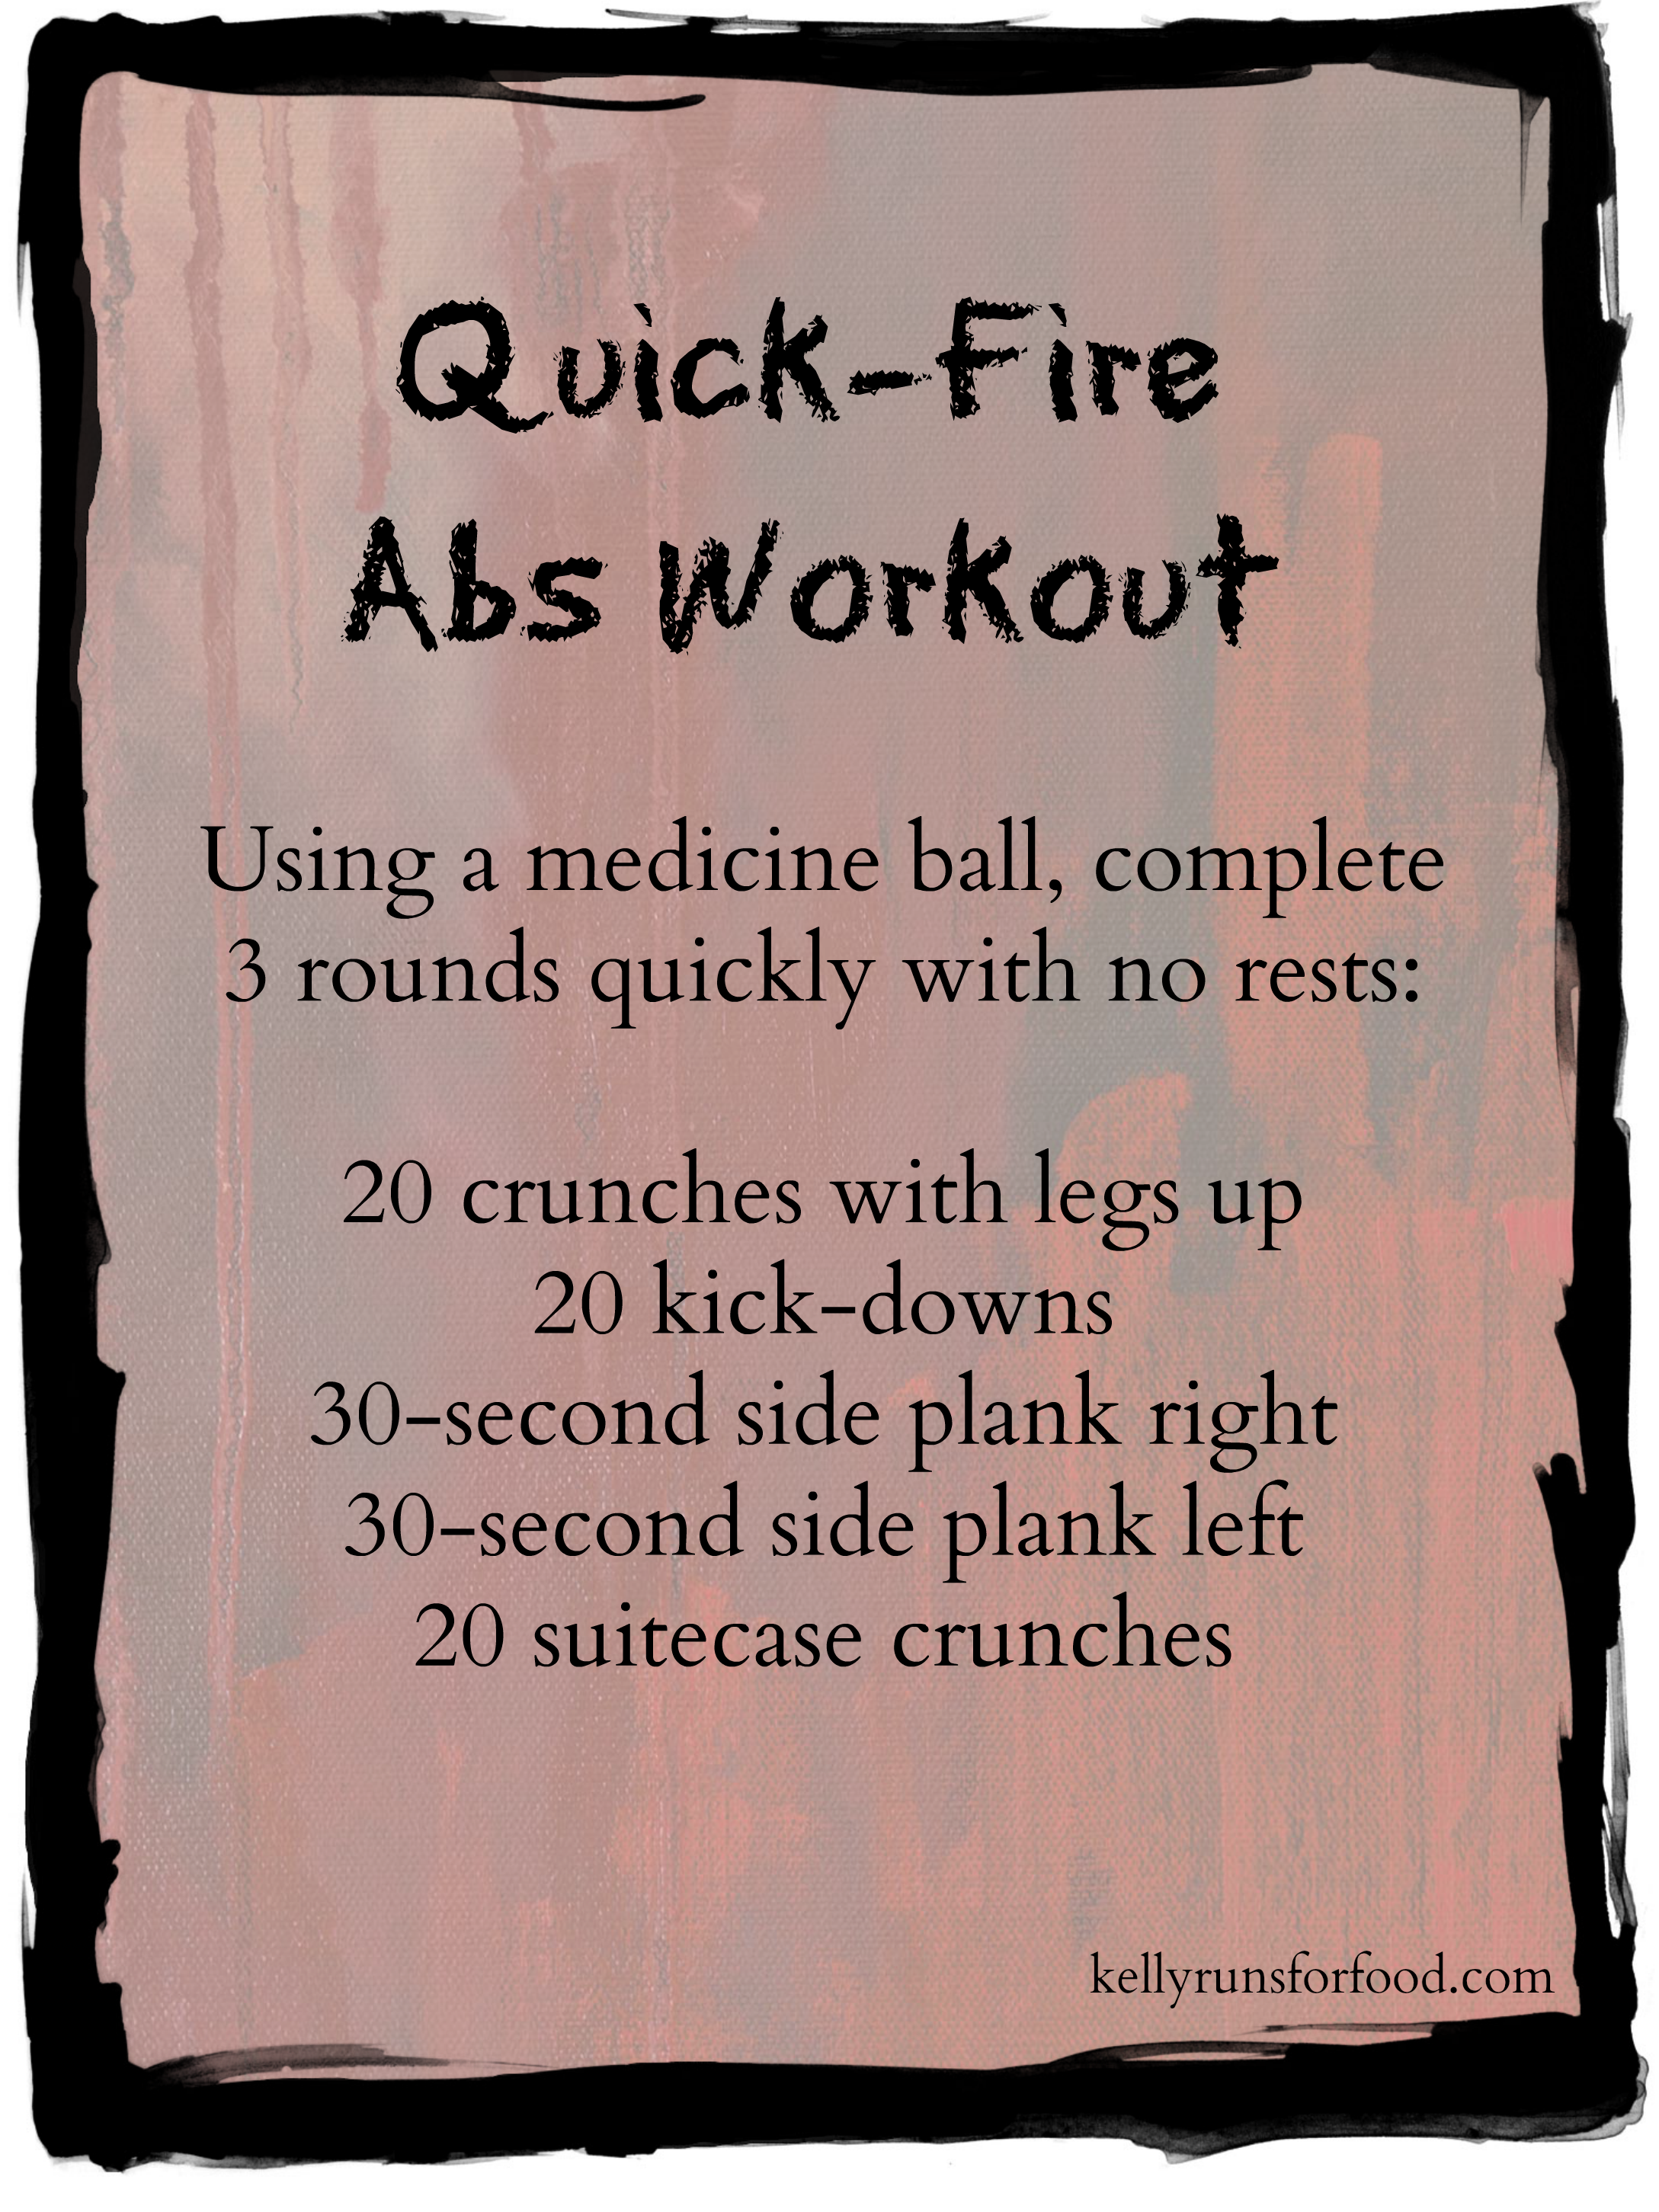 Quick-fire abs workout